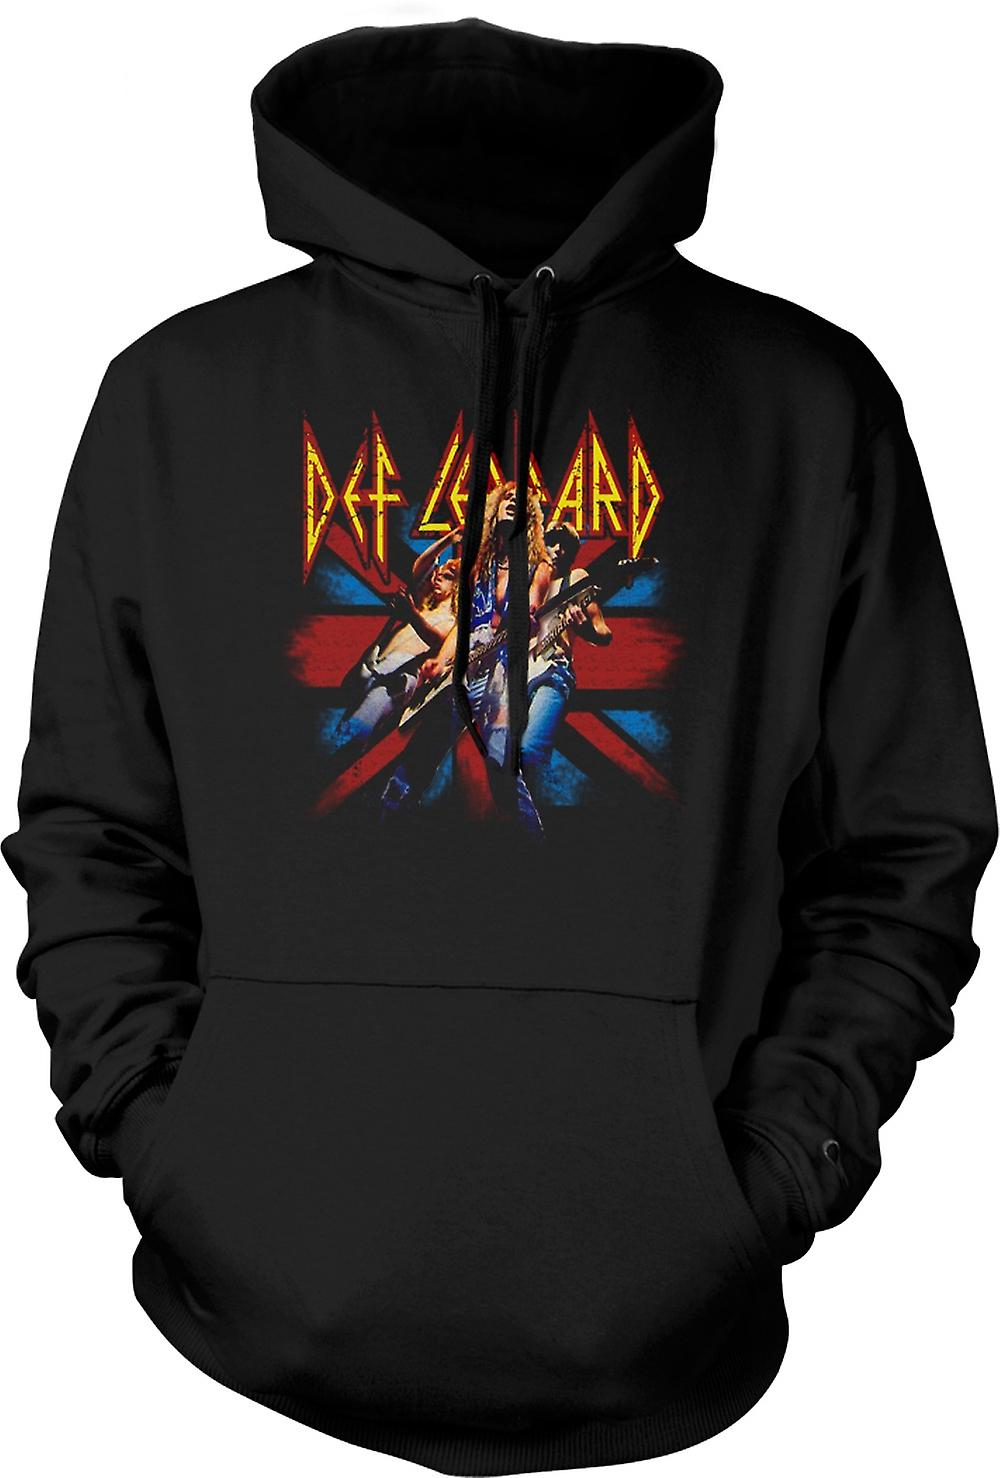 Enfant Sweat Capuche - Def Leppard - Rock britannique